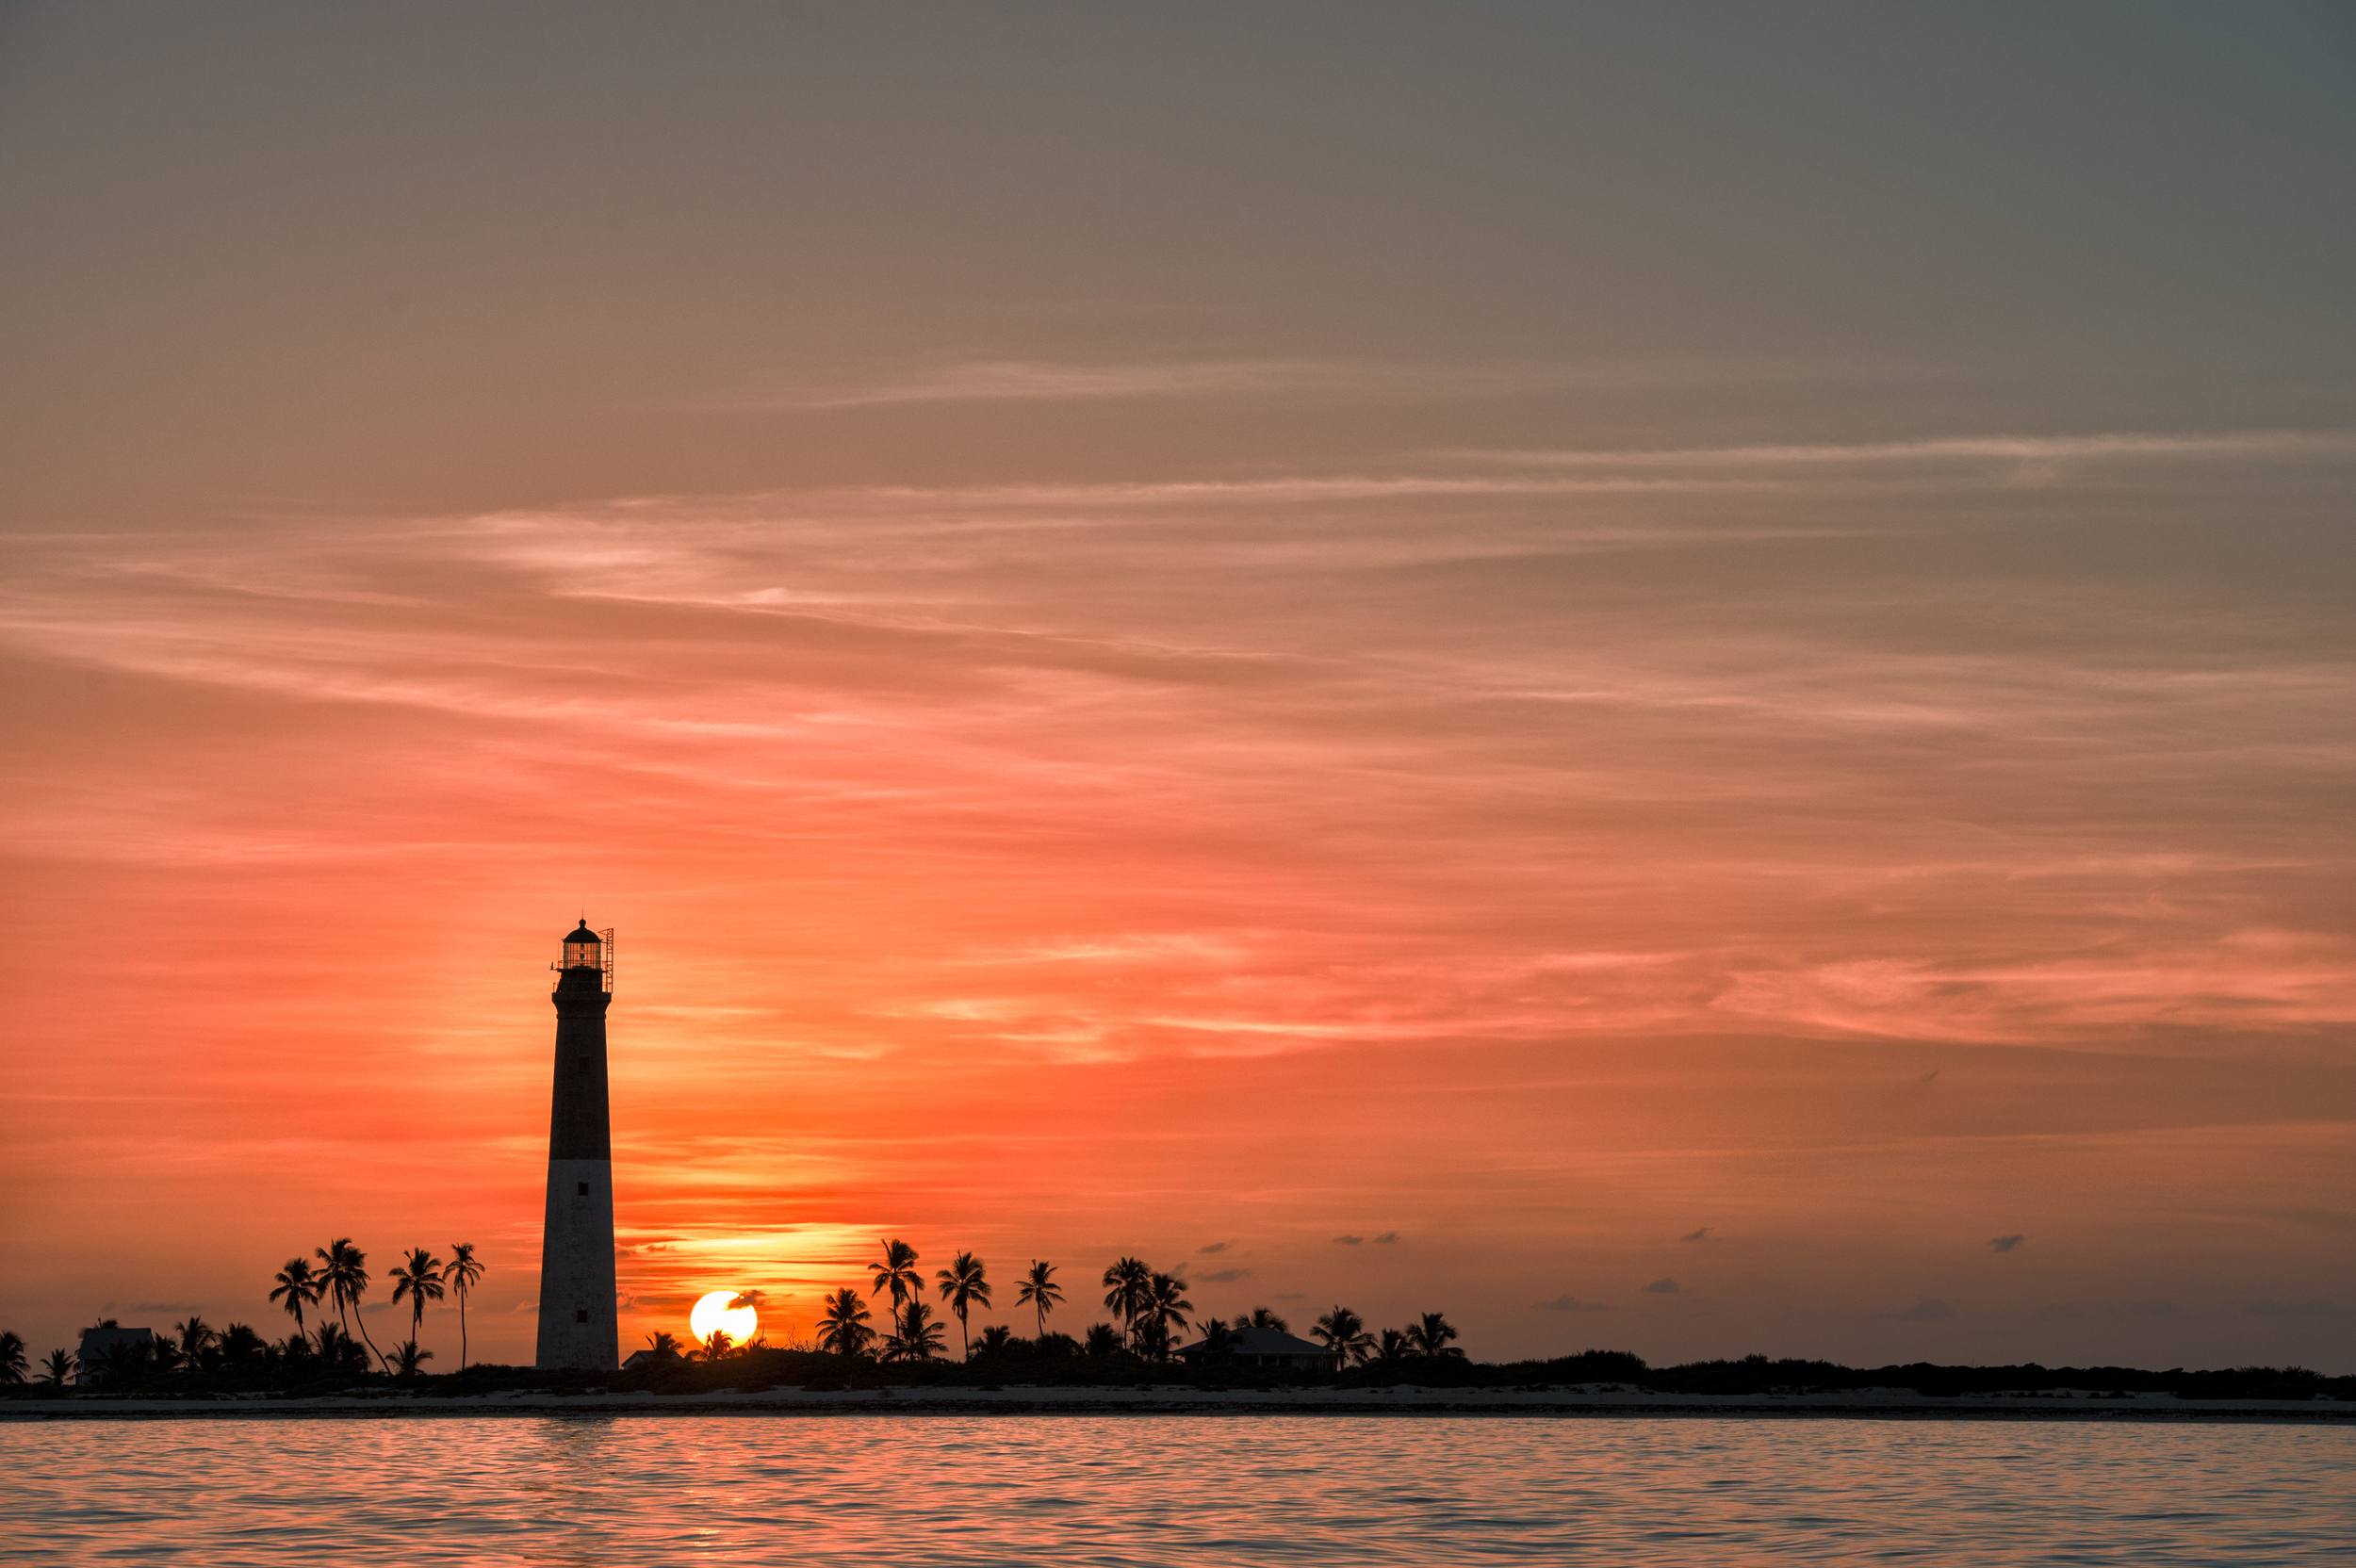 sunset from the lighthouse of dry tortugas – (PHOTO: Dan Kosmayer/SHUTTERSTOCK)